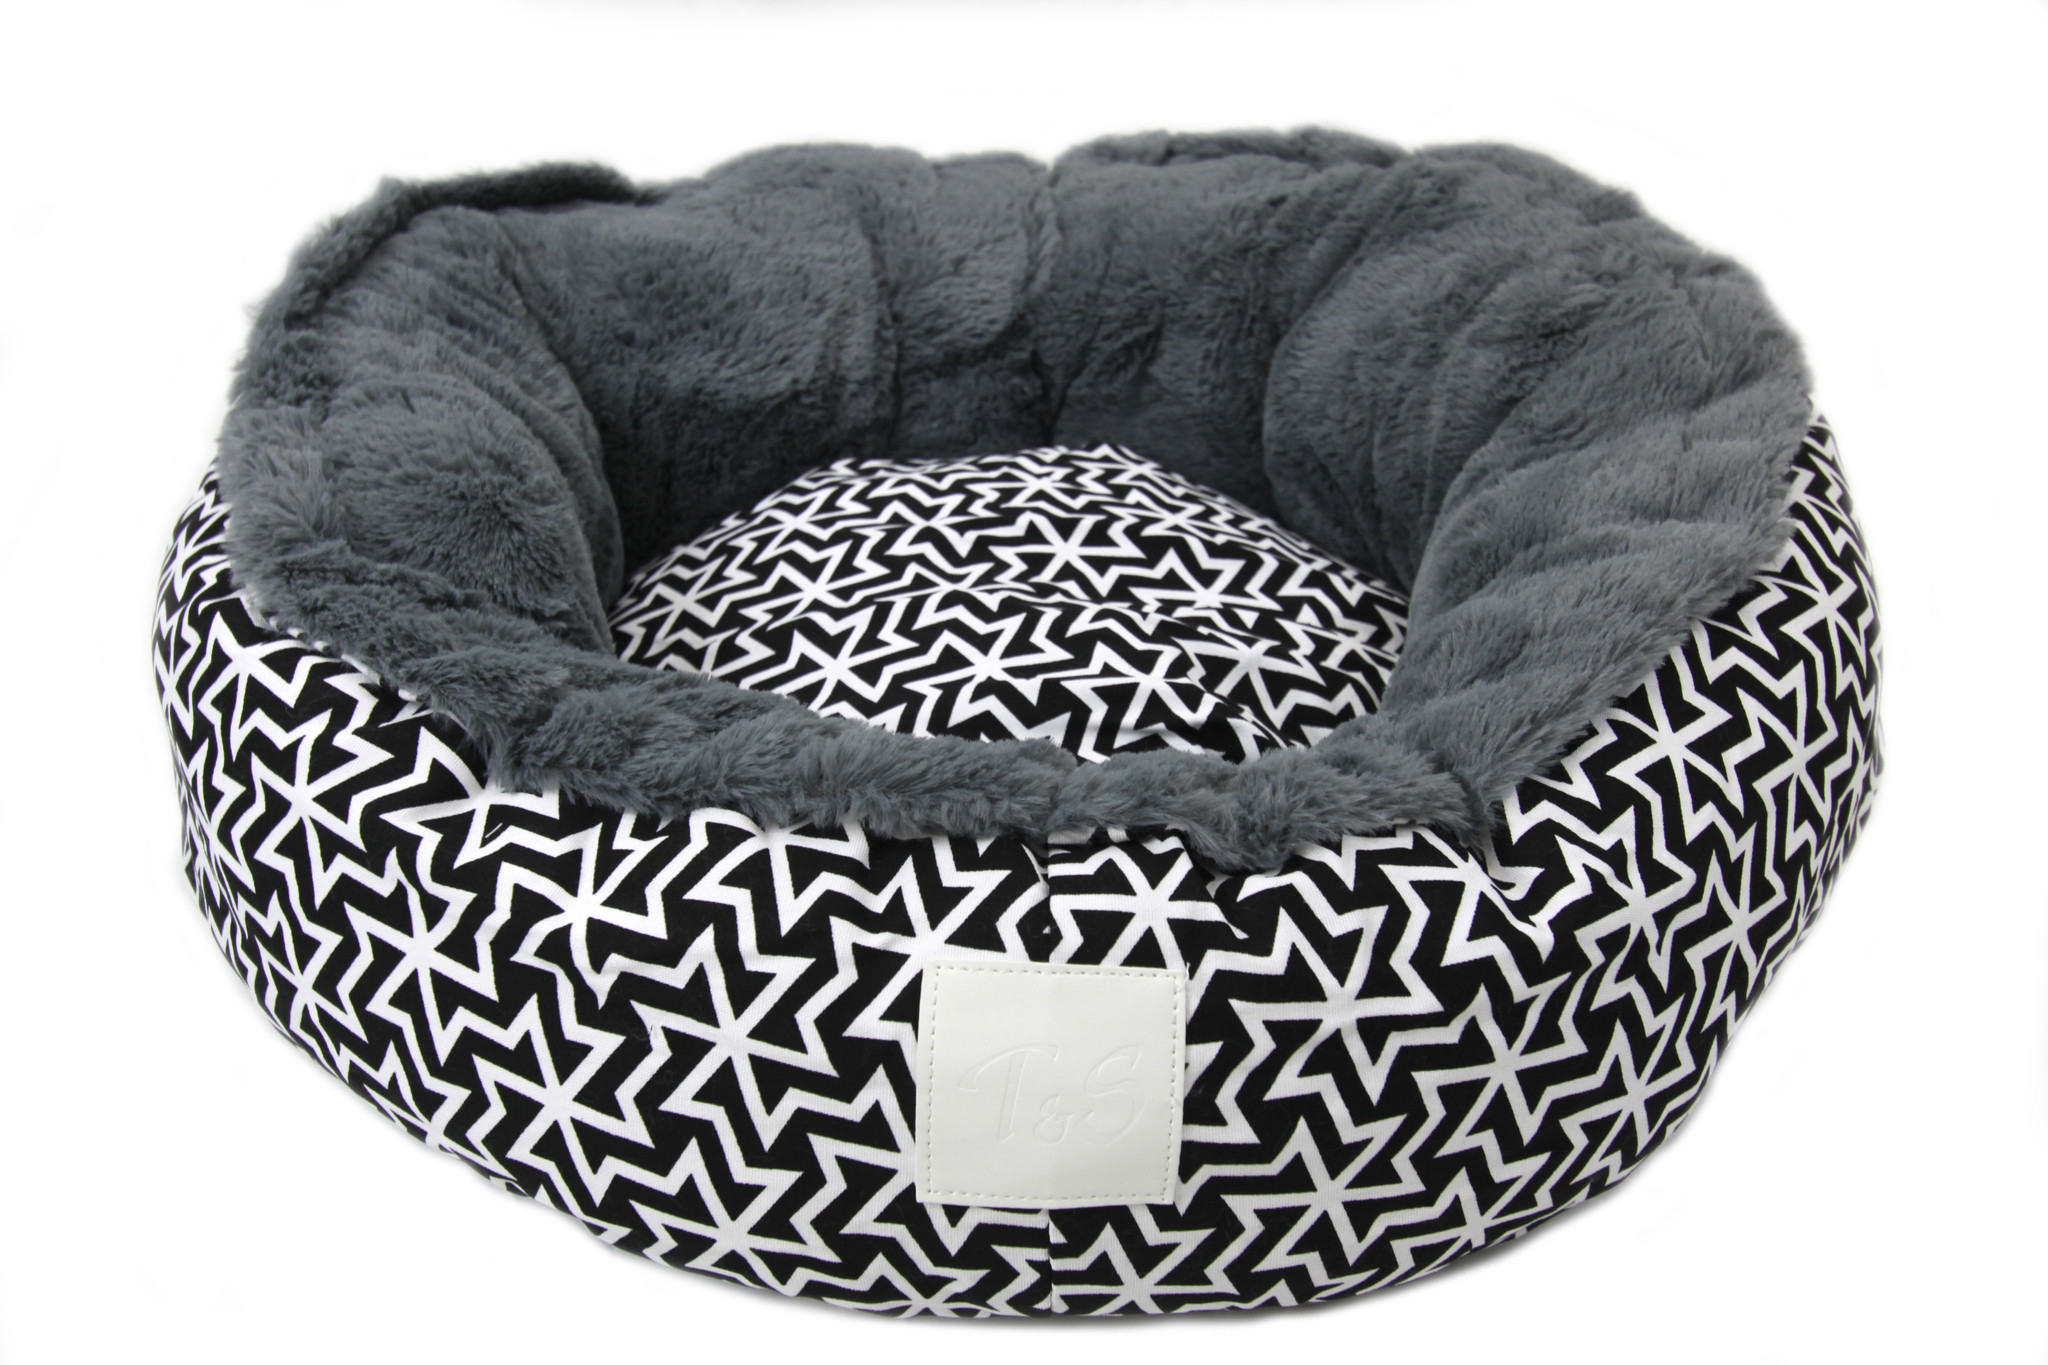 Snug Bed Black and White Chaos